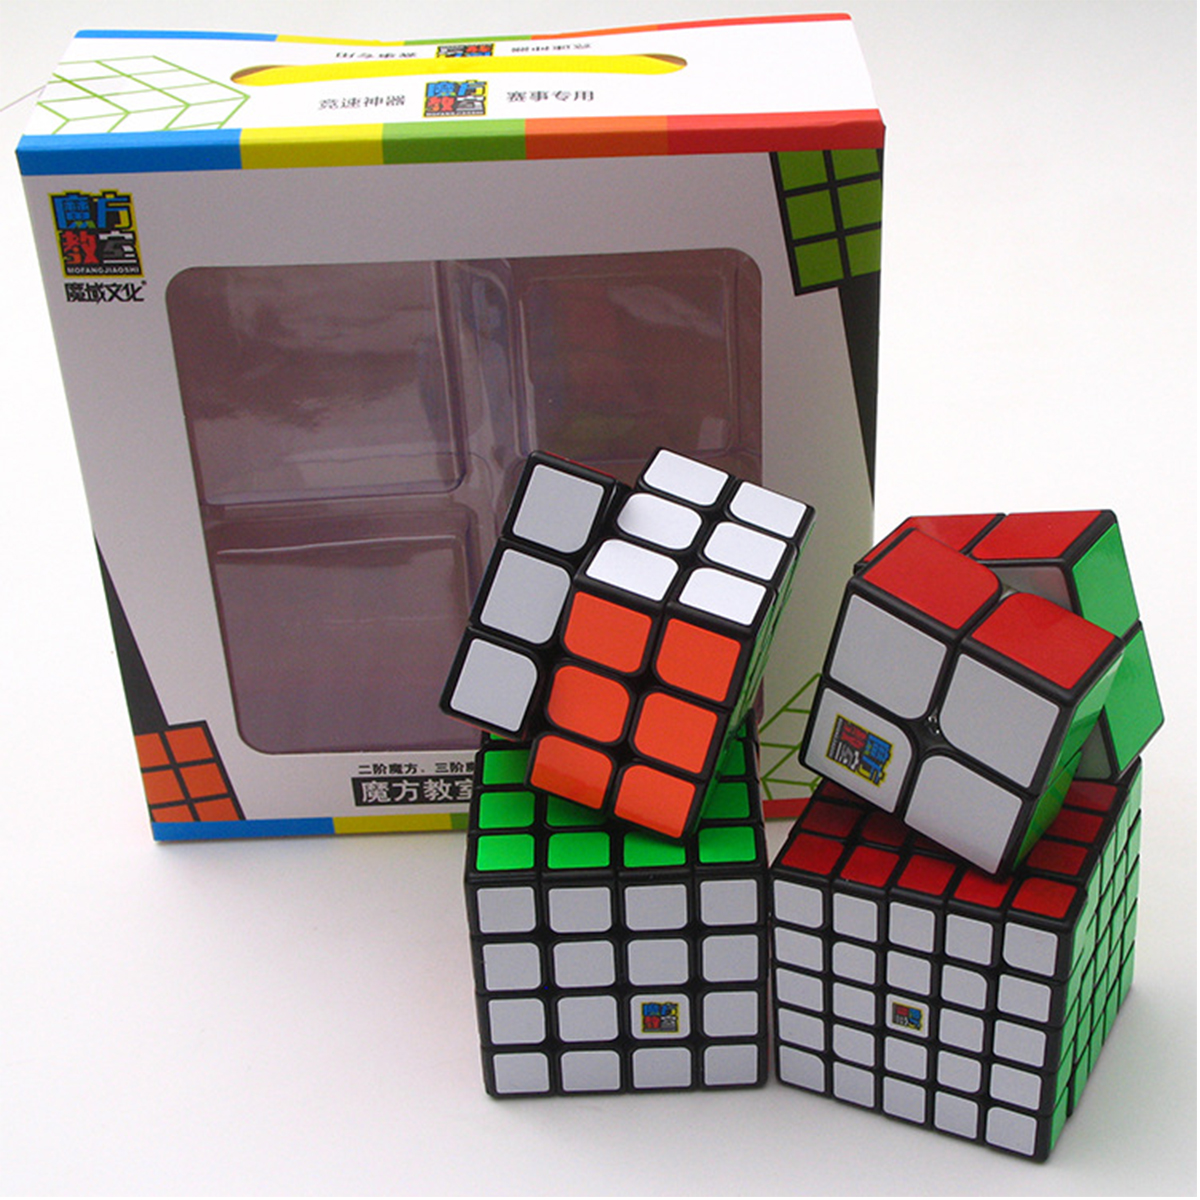 Tool Organizers Best Birthday Gift 4pcs/set 2x2x2 3x3x3 4x4x4 5x5x5 Stickerless Magic Cube Set Puzzle Boys 2*2*2 3*3*3 4*4*4 5*5*5 Moyu Cubes